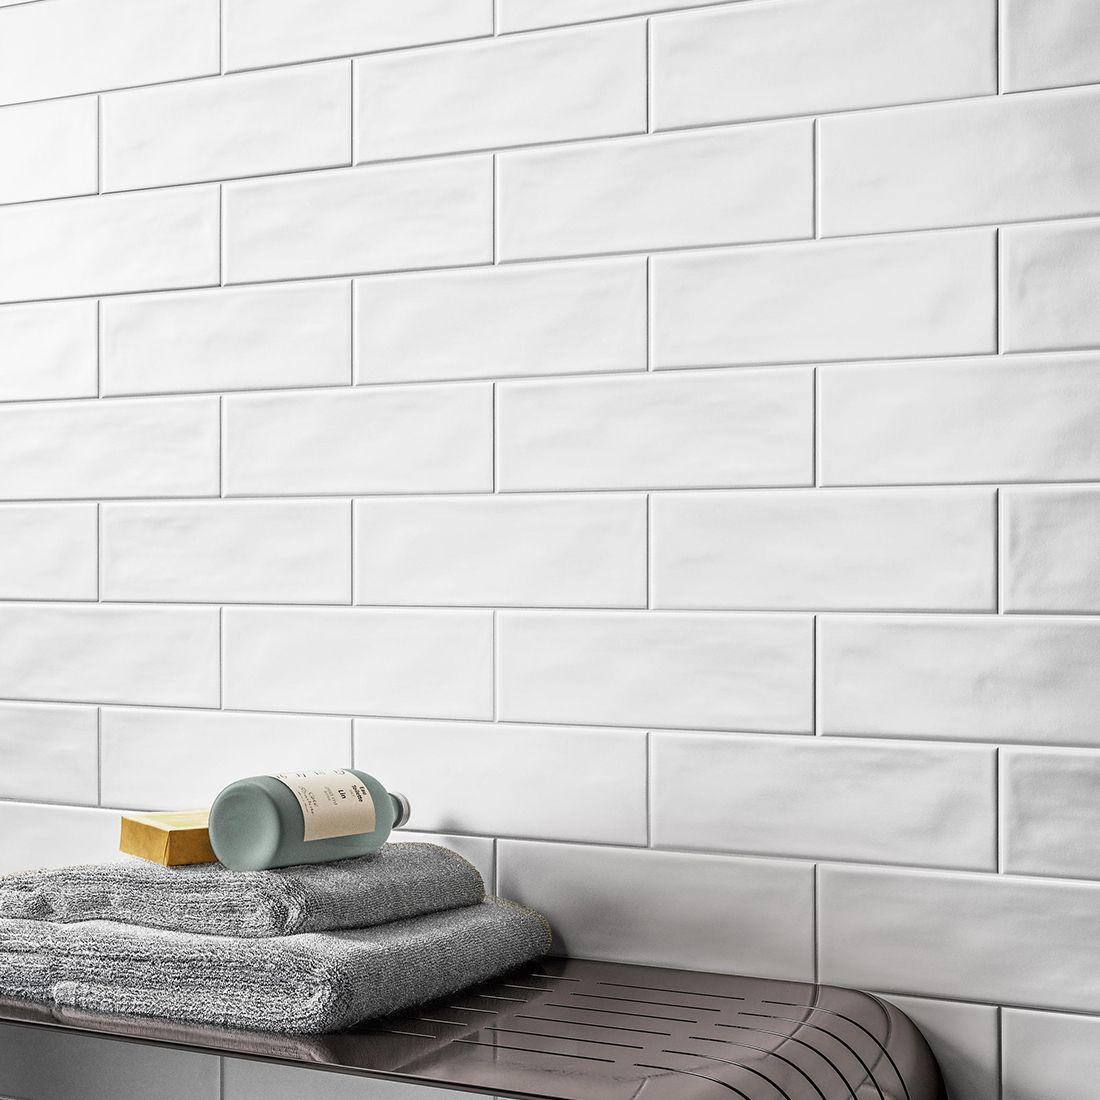 Whoosh White Matt Subway Tile Effortless Blithe And Boasting A Sought In 2020 White Subway Tile Kitchen White Subway Tiles Kitchen Backsplash Kitchen Splashback Tiles